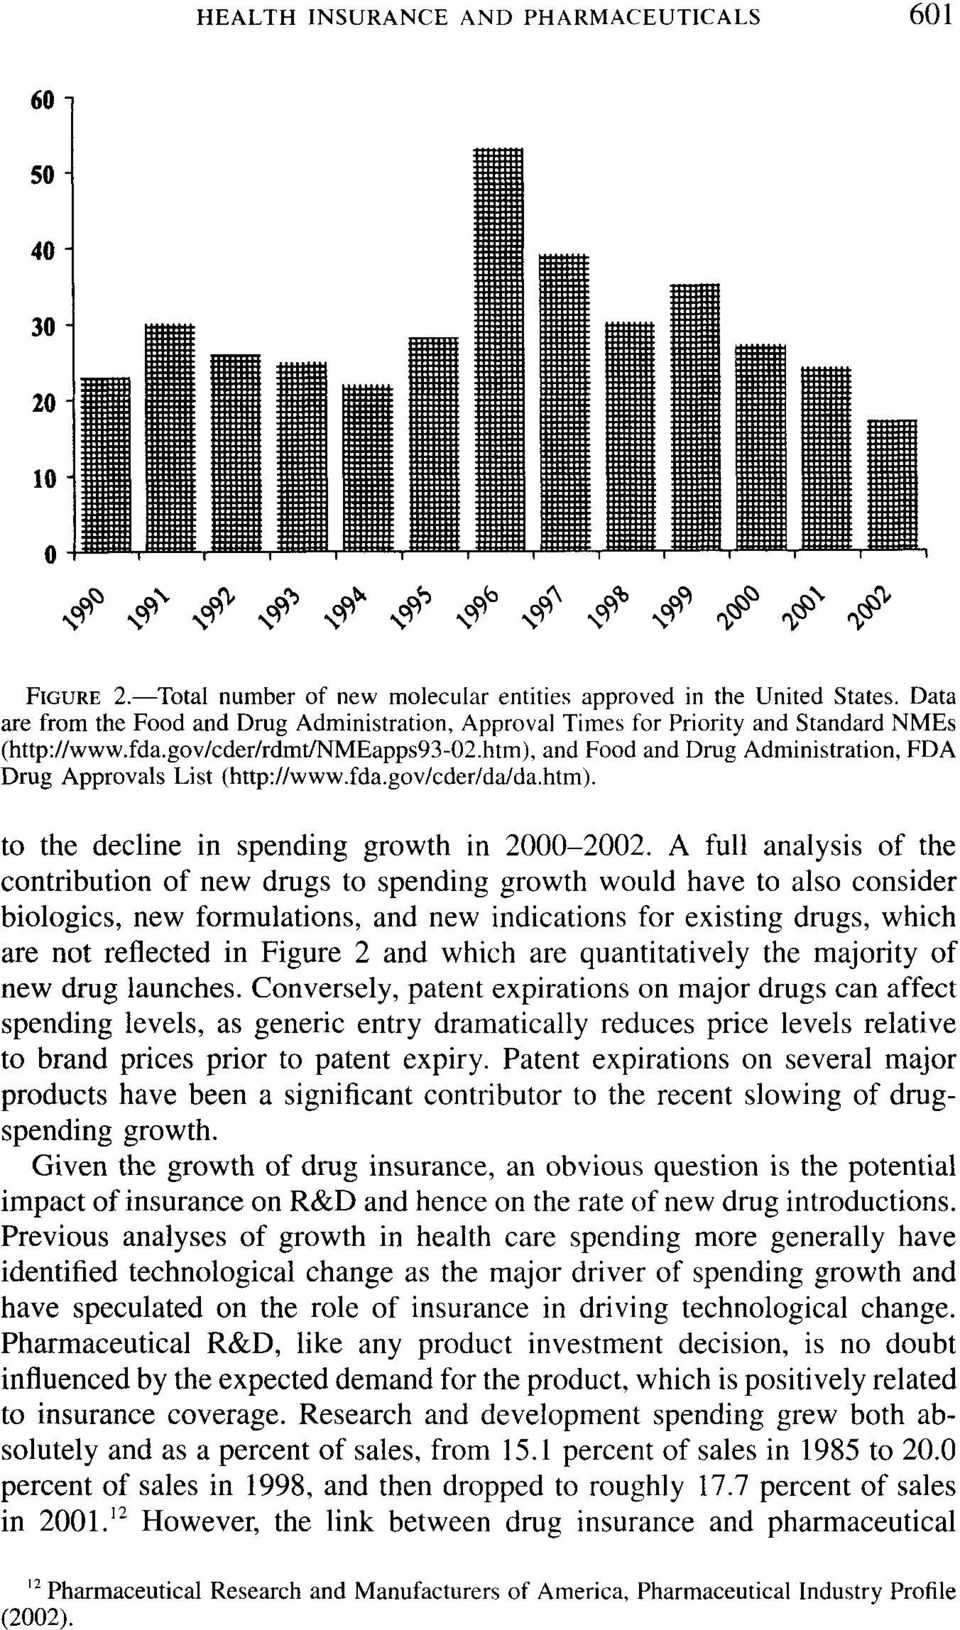 htm), and Food and Drug Administration, FDA Drug Approvals List (http://www.fda.gov/cder/da/da.htm). to the decline in spending growth in 2000-2002.